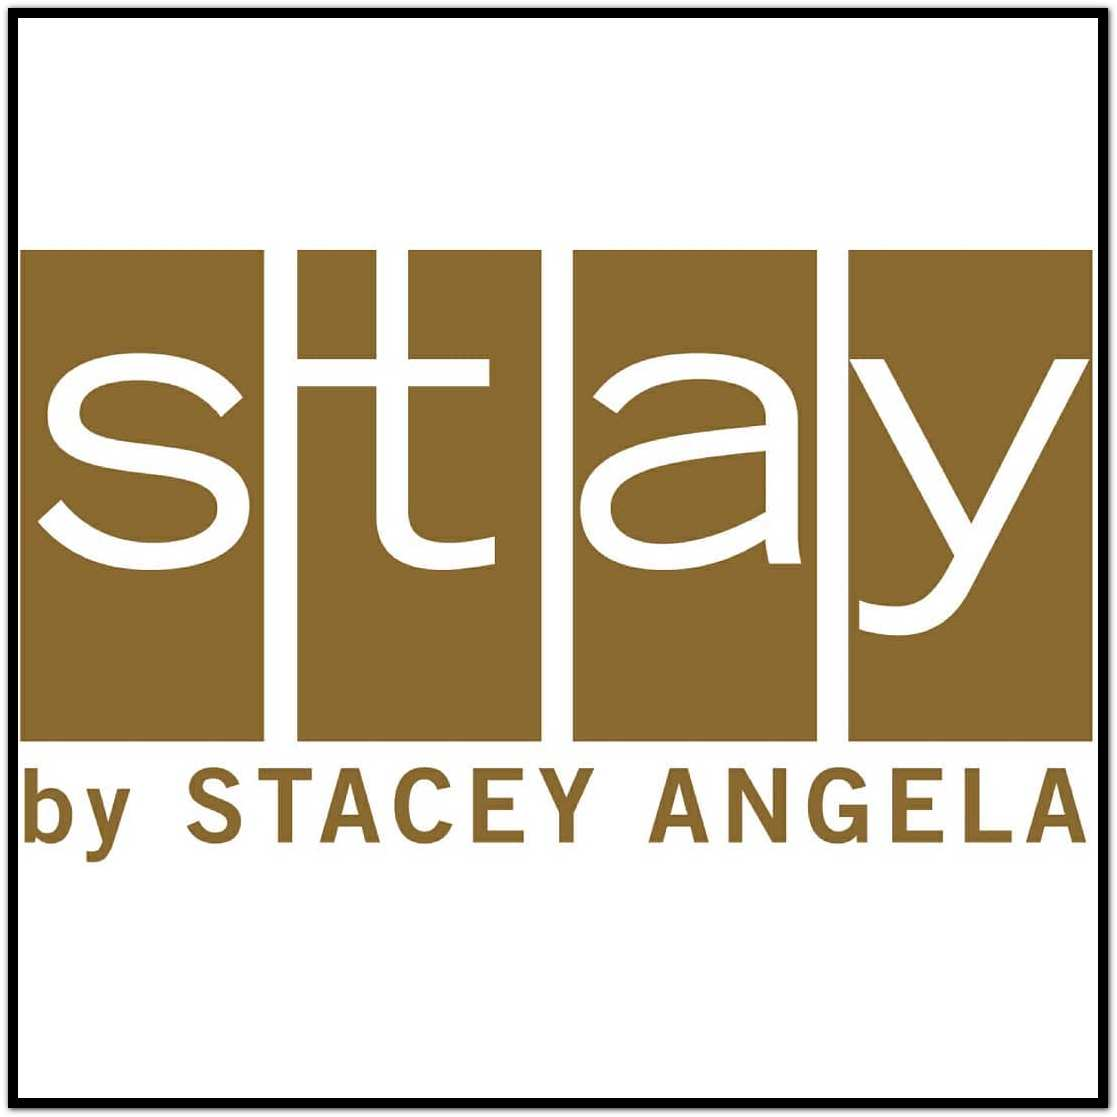 Stacey Angela Williams